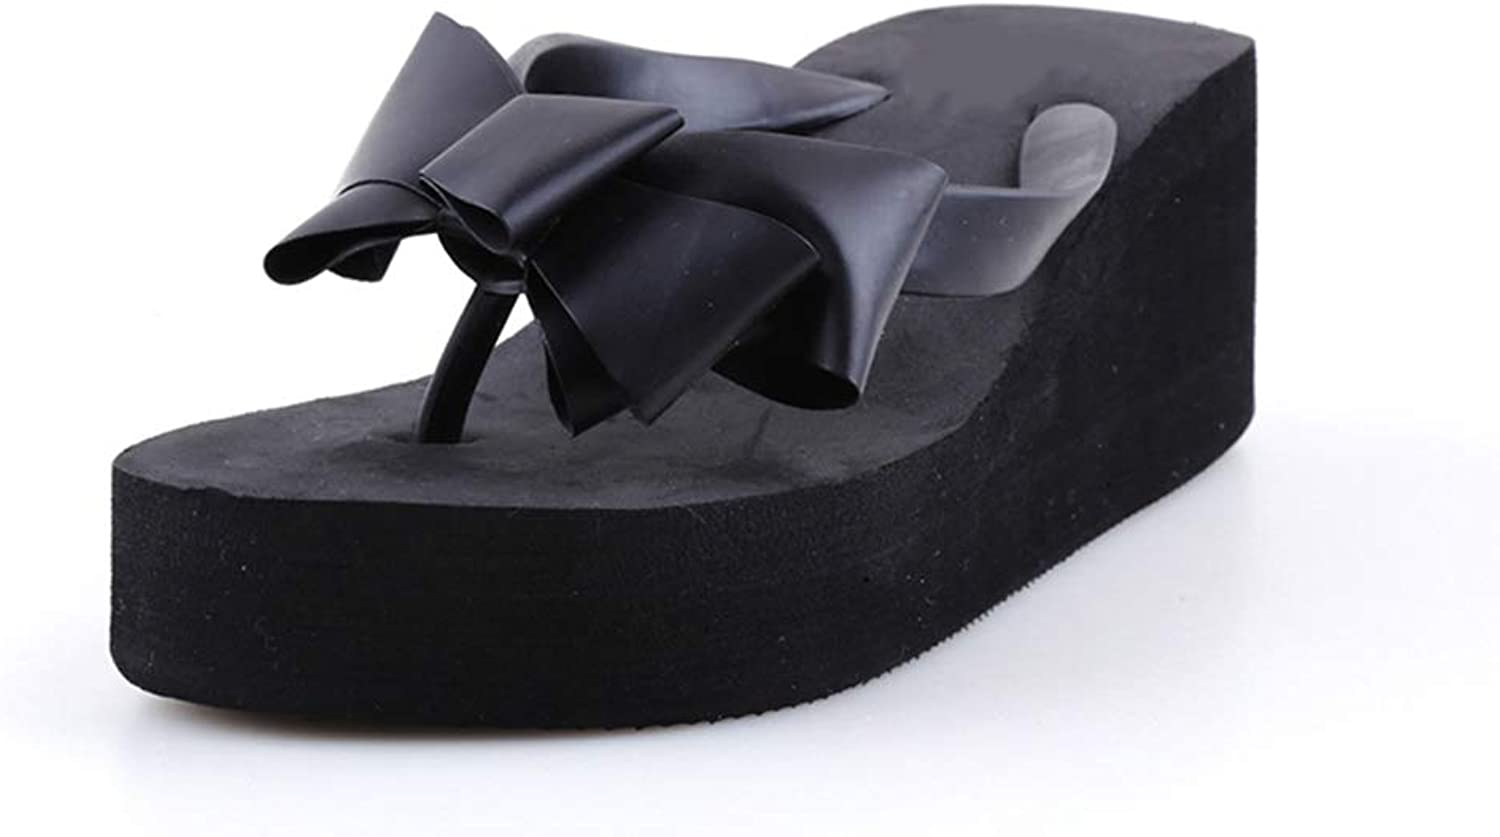 T-JULY Summer Fashion Women's Sandals Beach Slippers Bow Wedge Mid Heel Ladies Breathable shoes